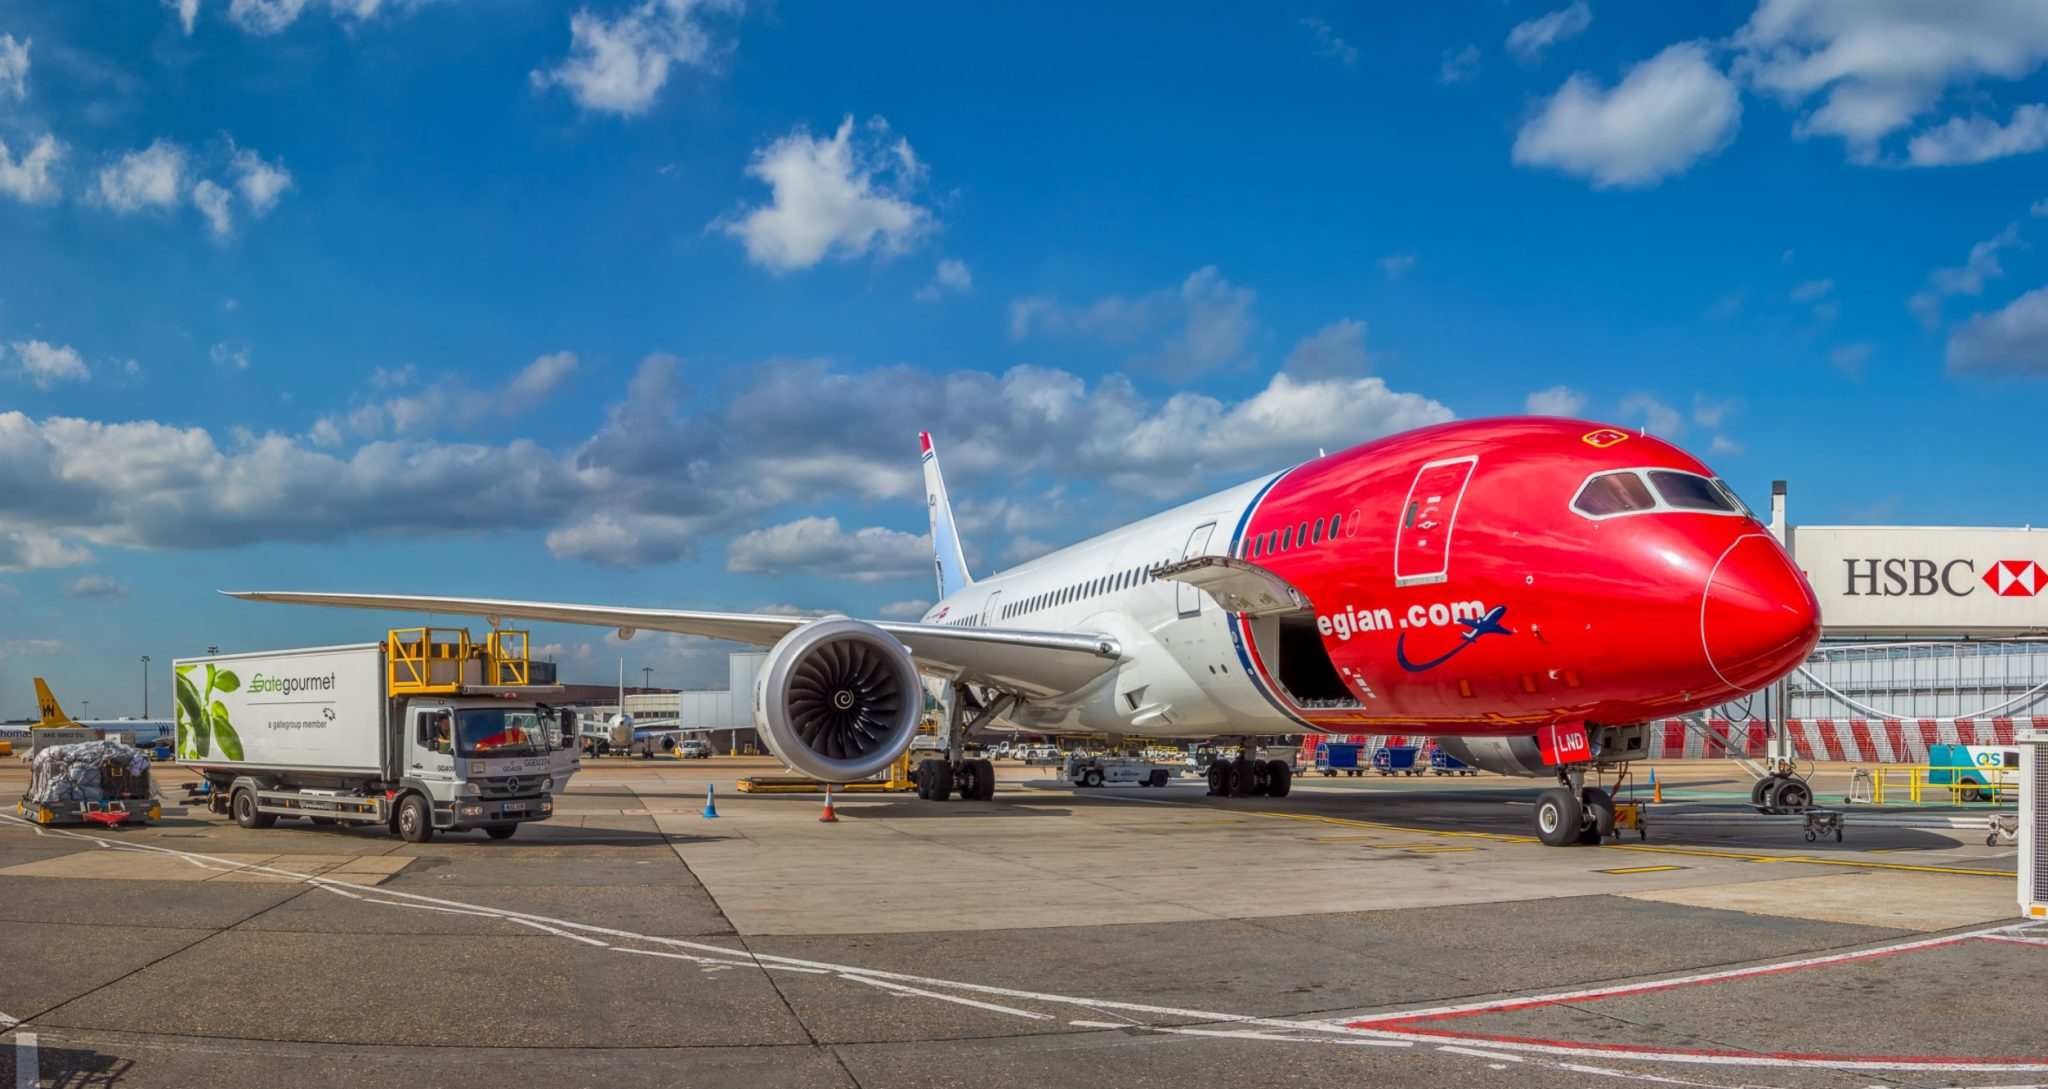 Budget Norwegian airline to offer flight from Chicago to London